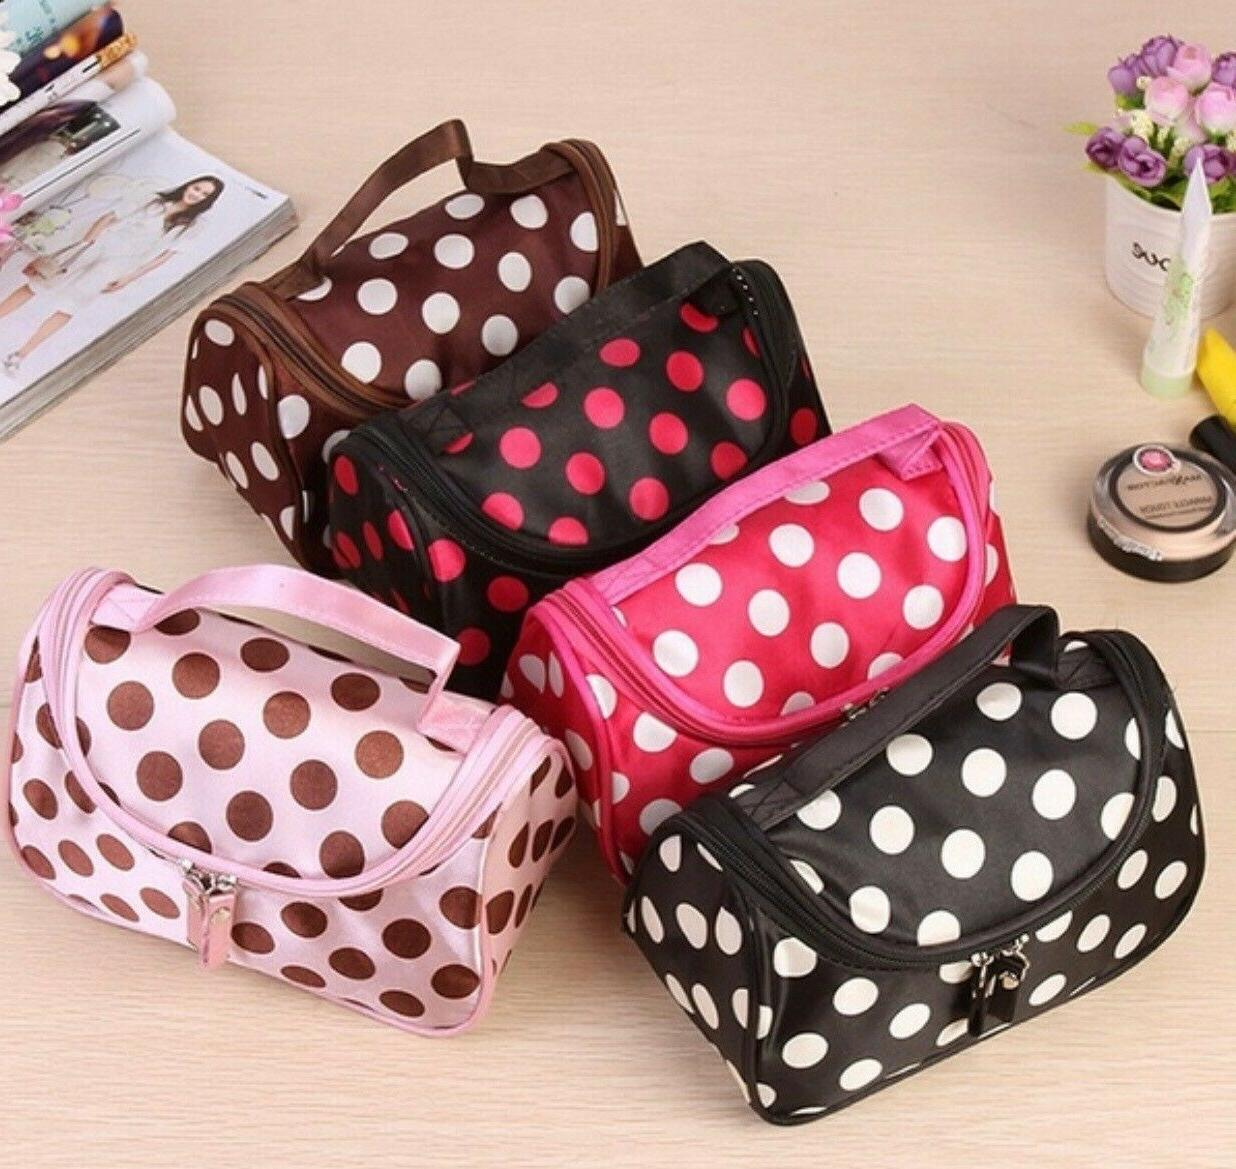 Women Beauty Cosmetic Makeup Case Wash Toiletry Bag Organizer